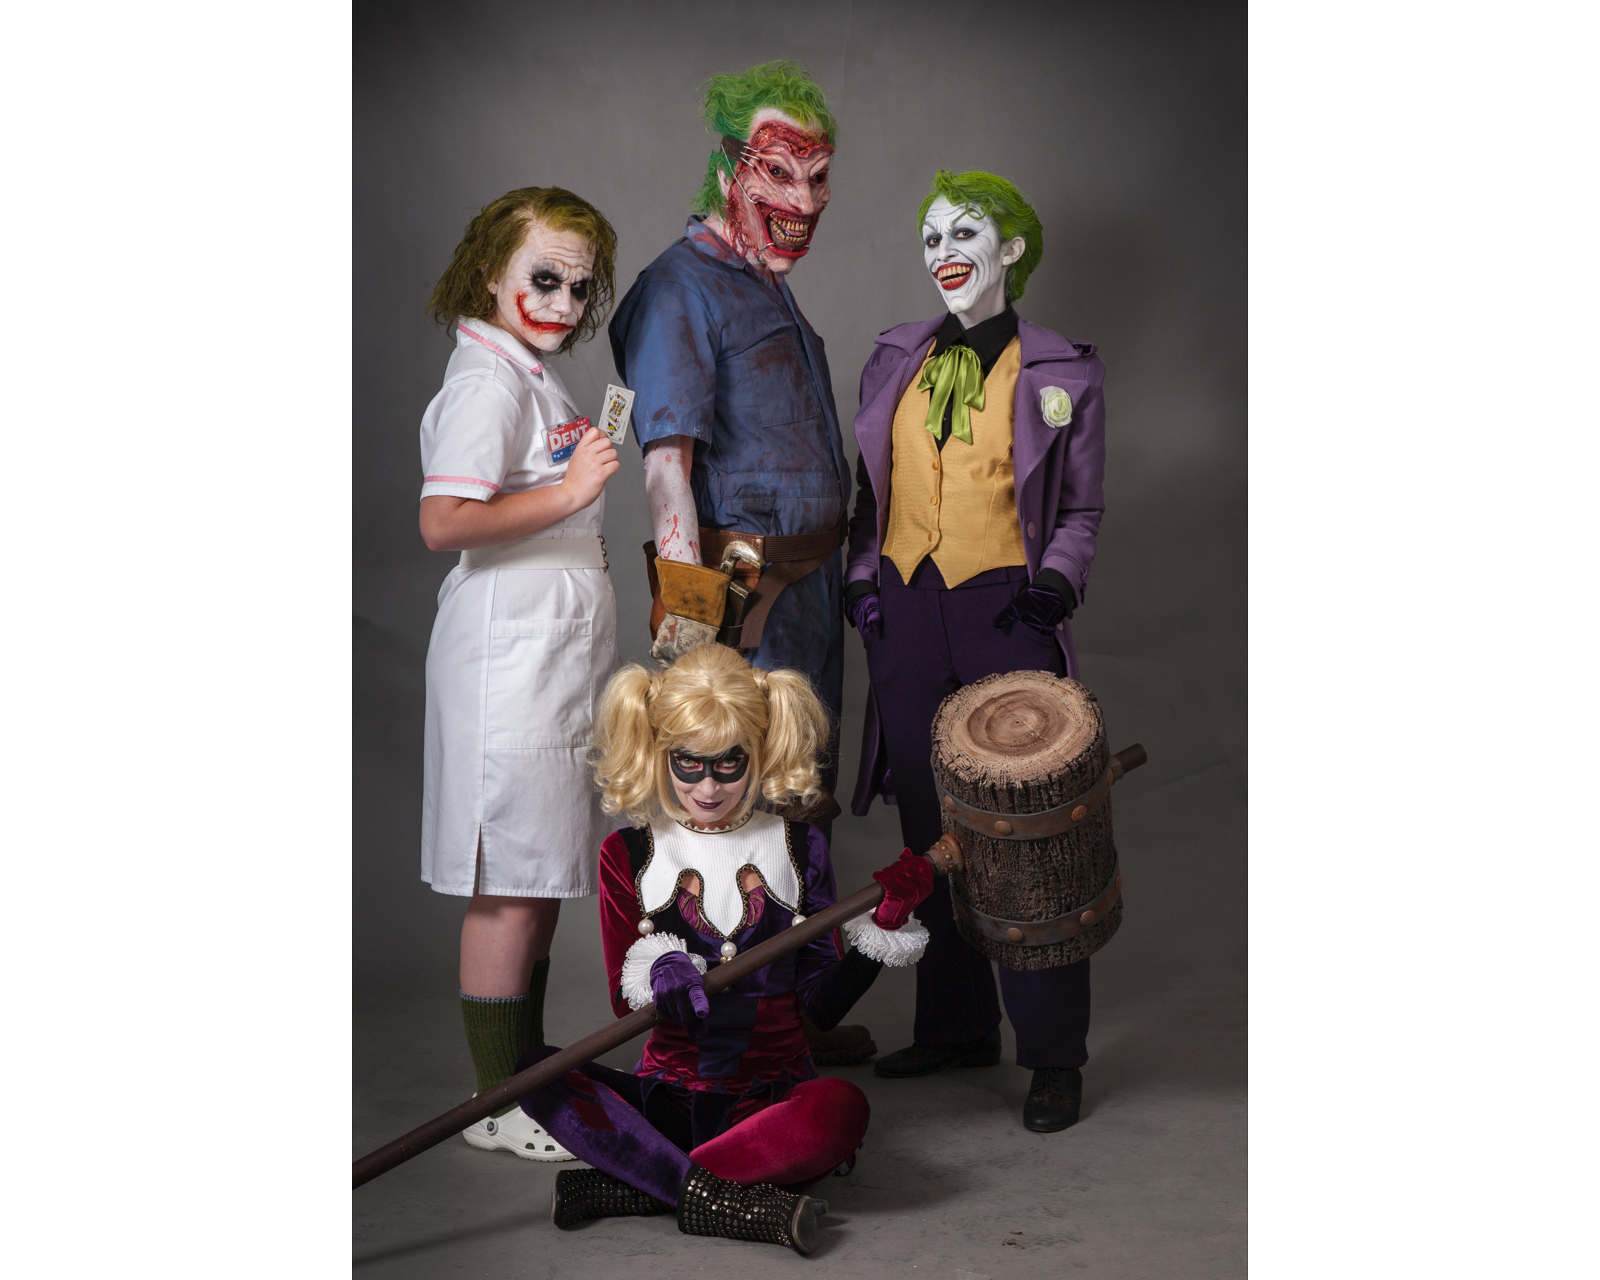 Rick Baker (center) gave his family movie-style makeup one Halloween to become different iterations of the Joker (and Harley Quinn), from screen to comic book.